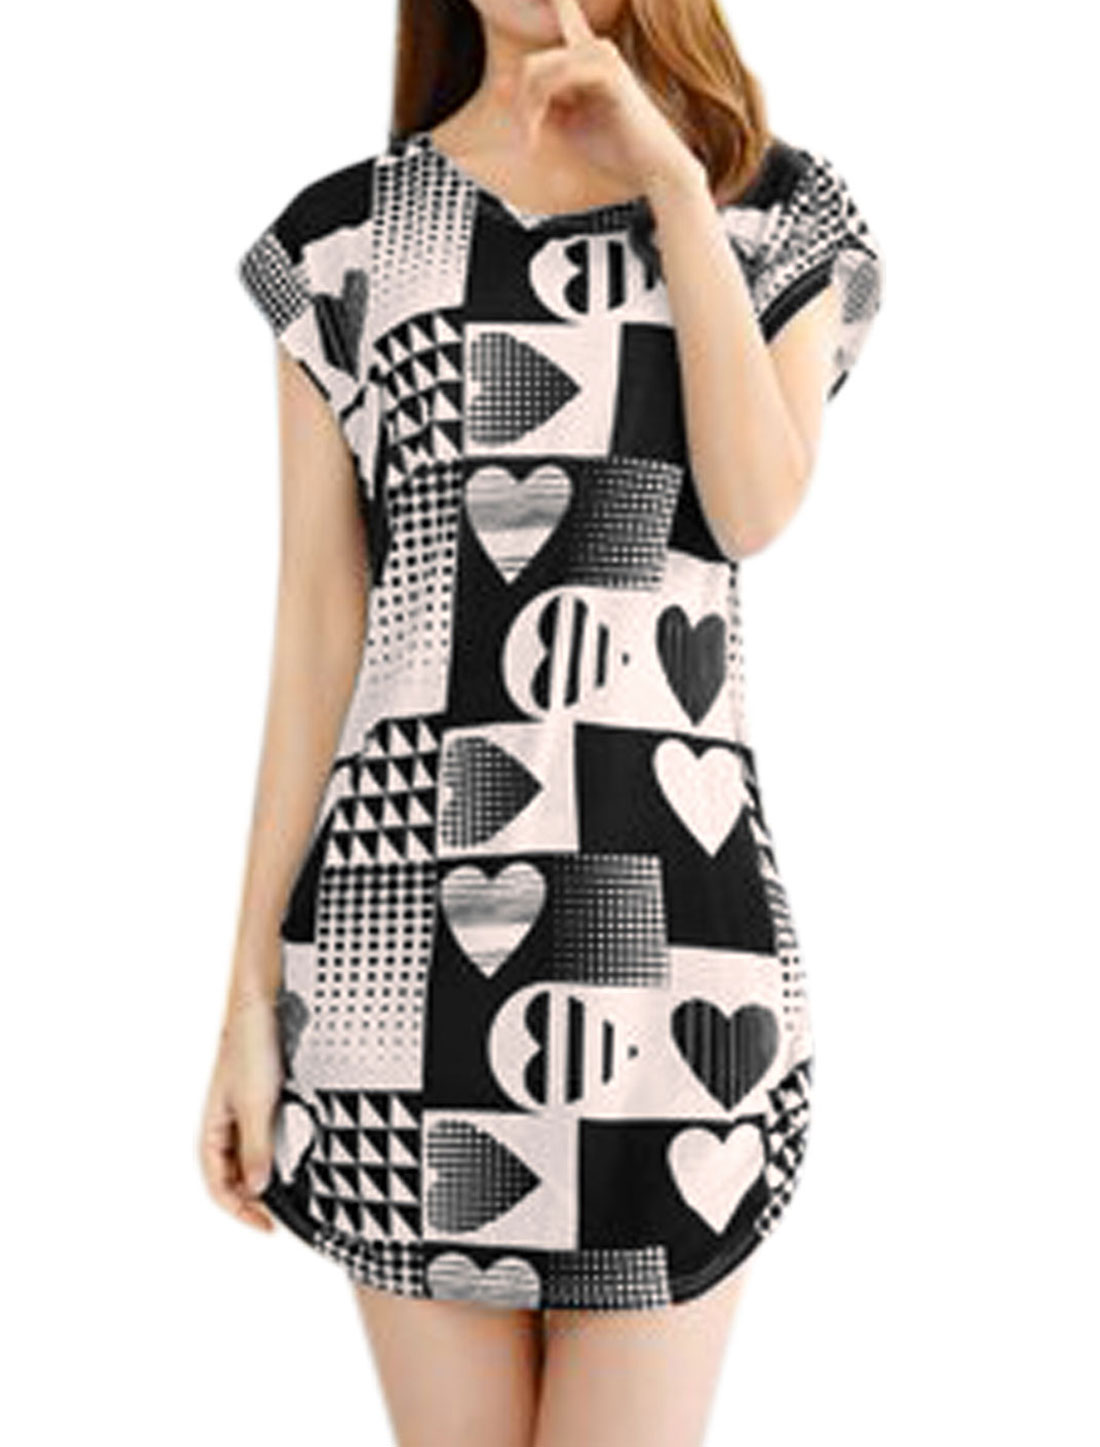 Ladies Short Sleeve Poker Print Sides Shirred Tunic Dresses Black Beige S